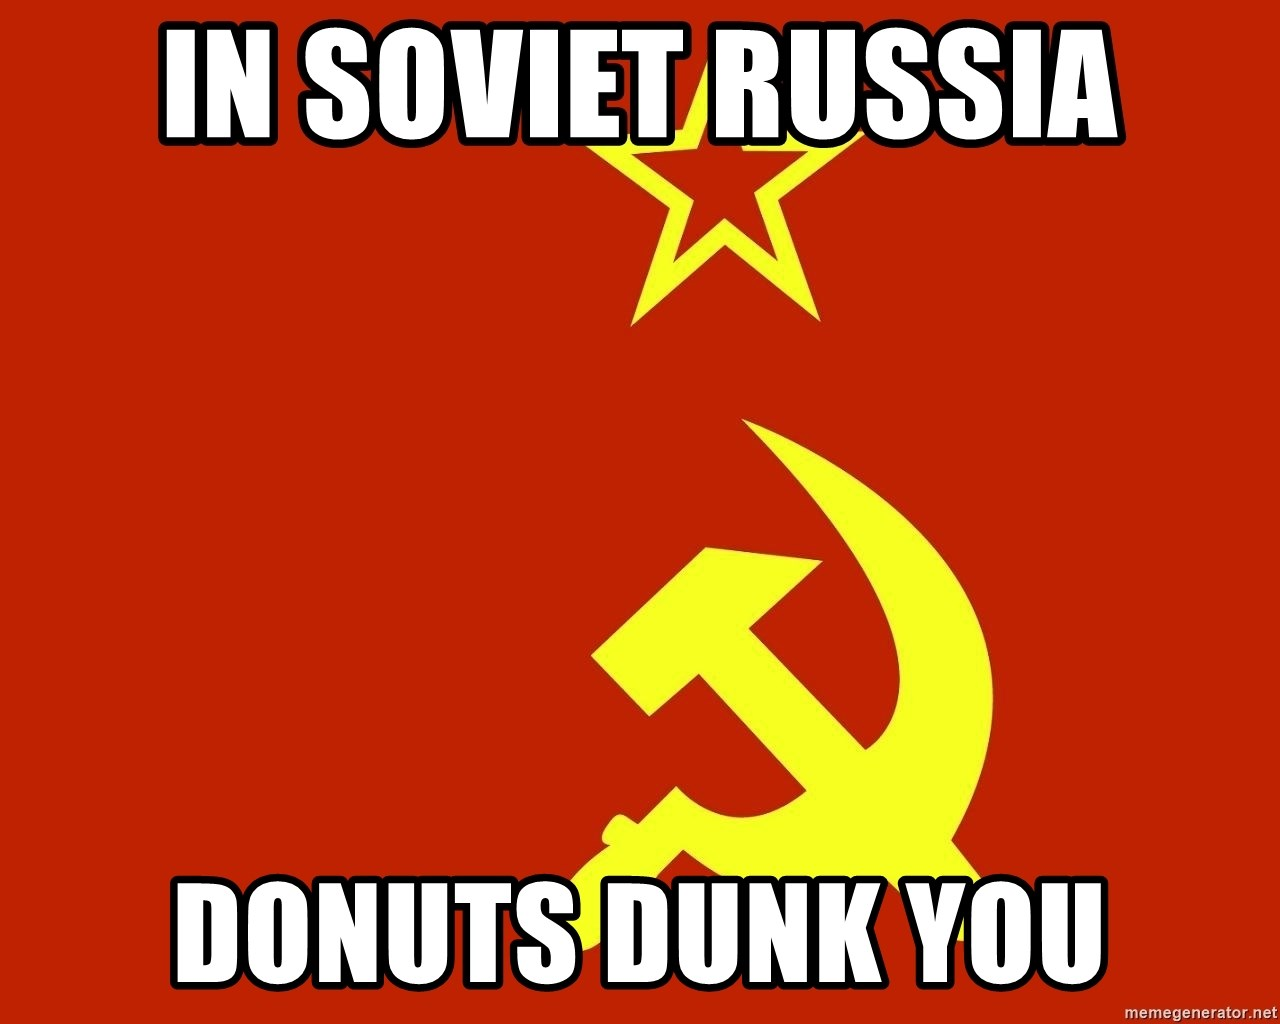 In Soviet Russia - In Soviet Russia Donuts Dunk You